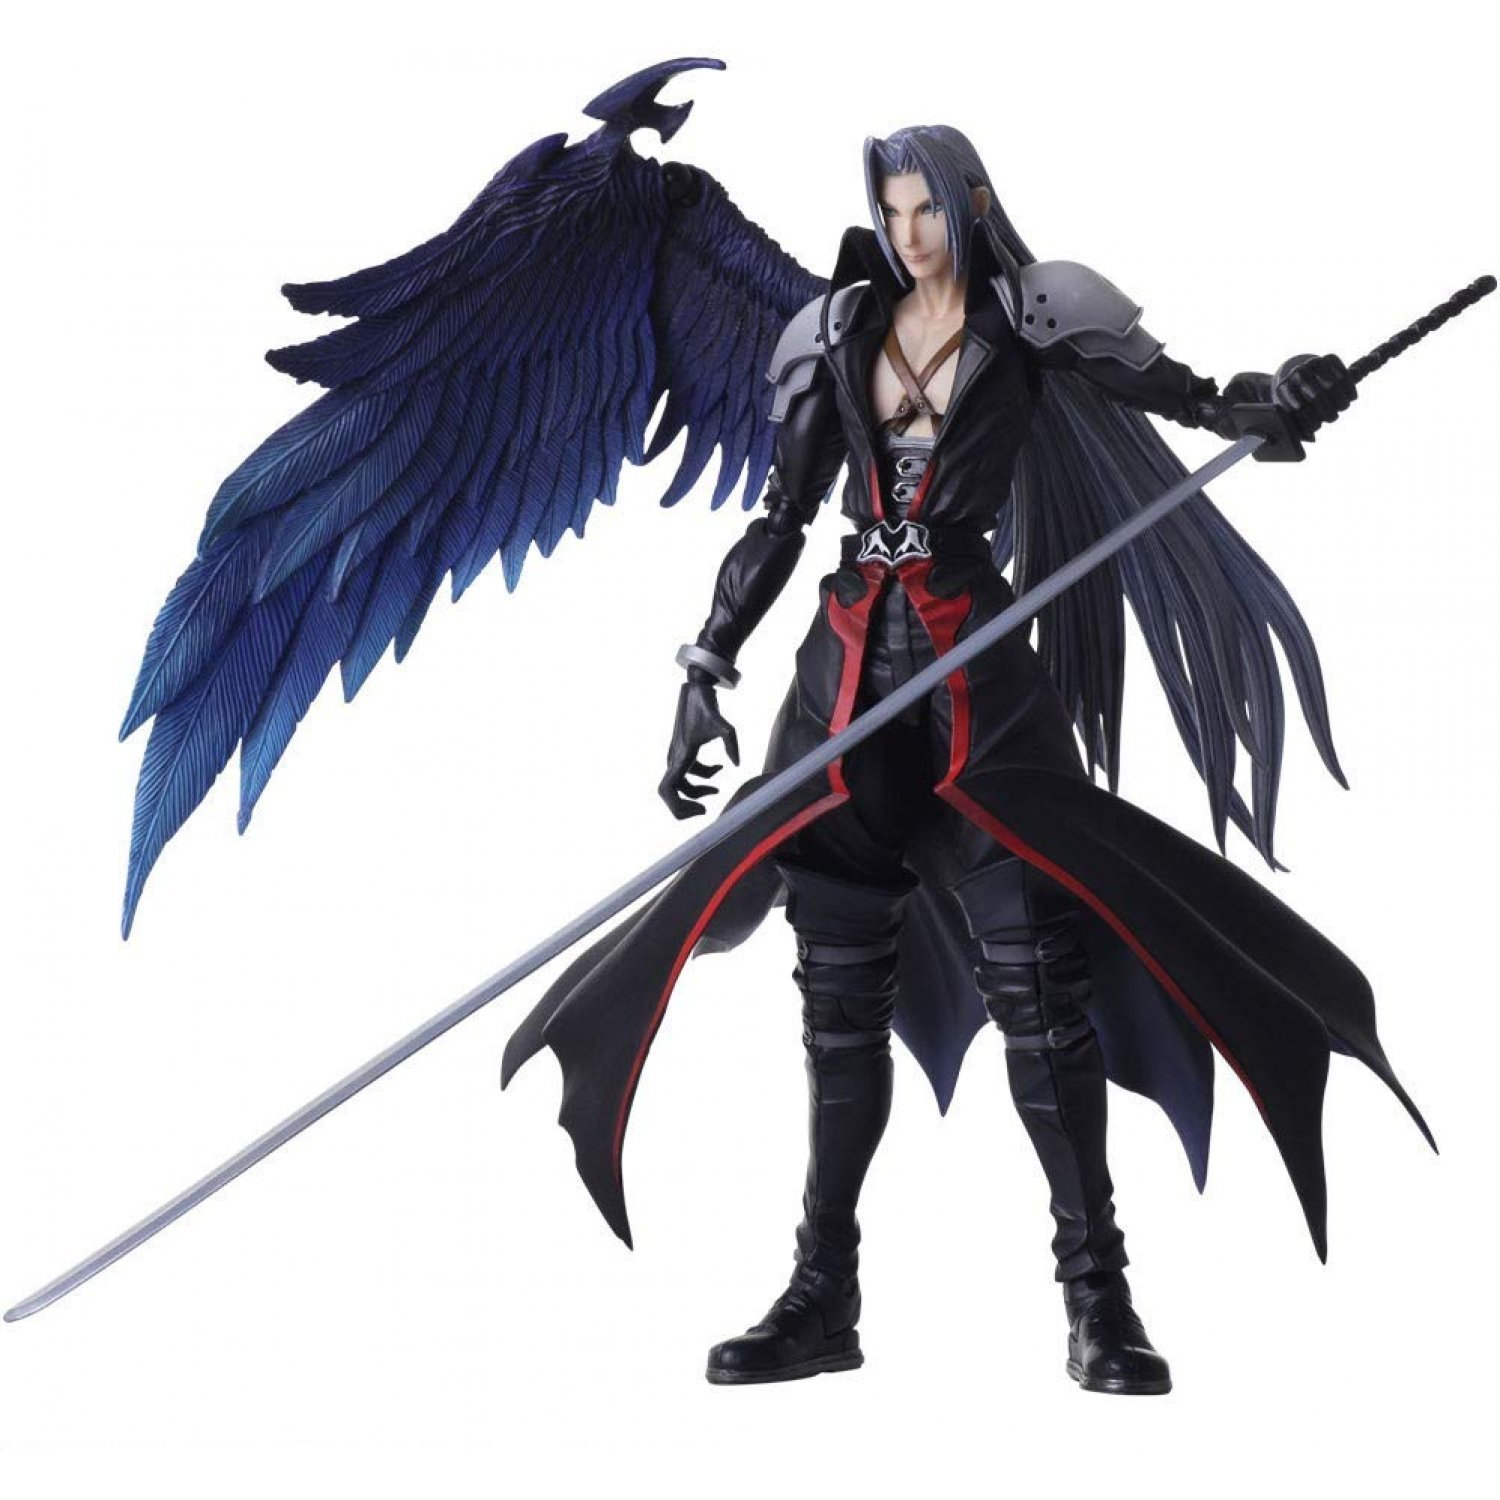 Final Fantasy Bring Arts Cloud Sephiroth Another Form Ver